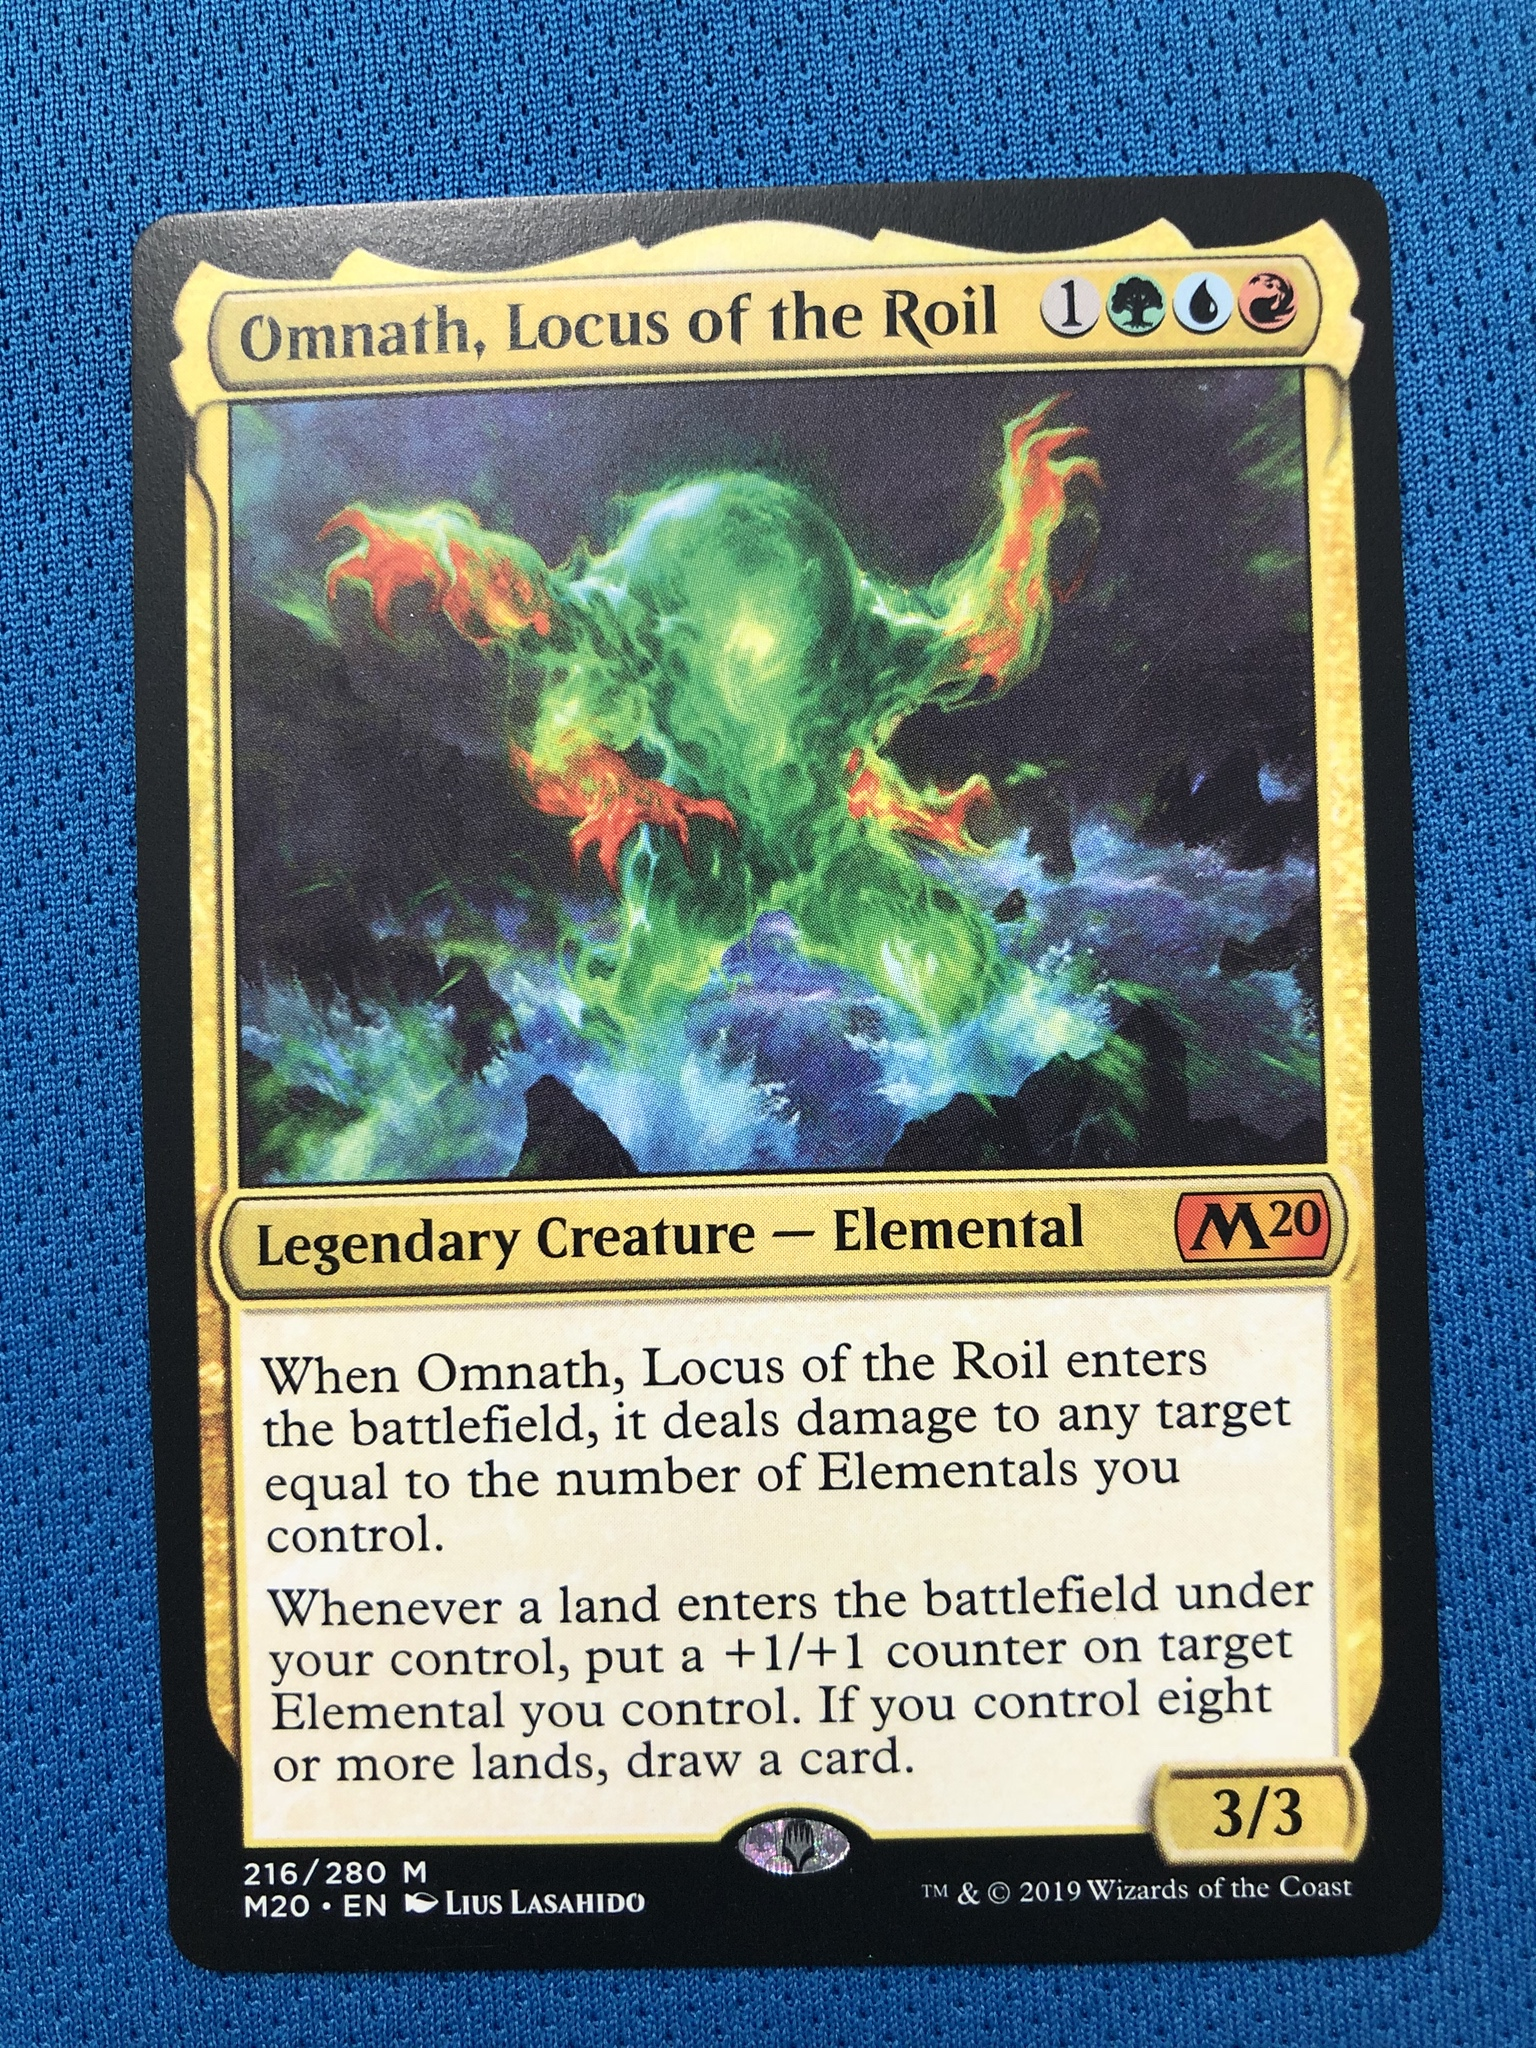 Omnath, Locus Of The RoilM20 Hologram Magician ProxyKing 8.0 VIP The Proxy Cards To Gathering Every Single Mg Card.